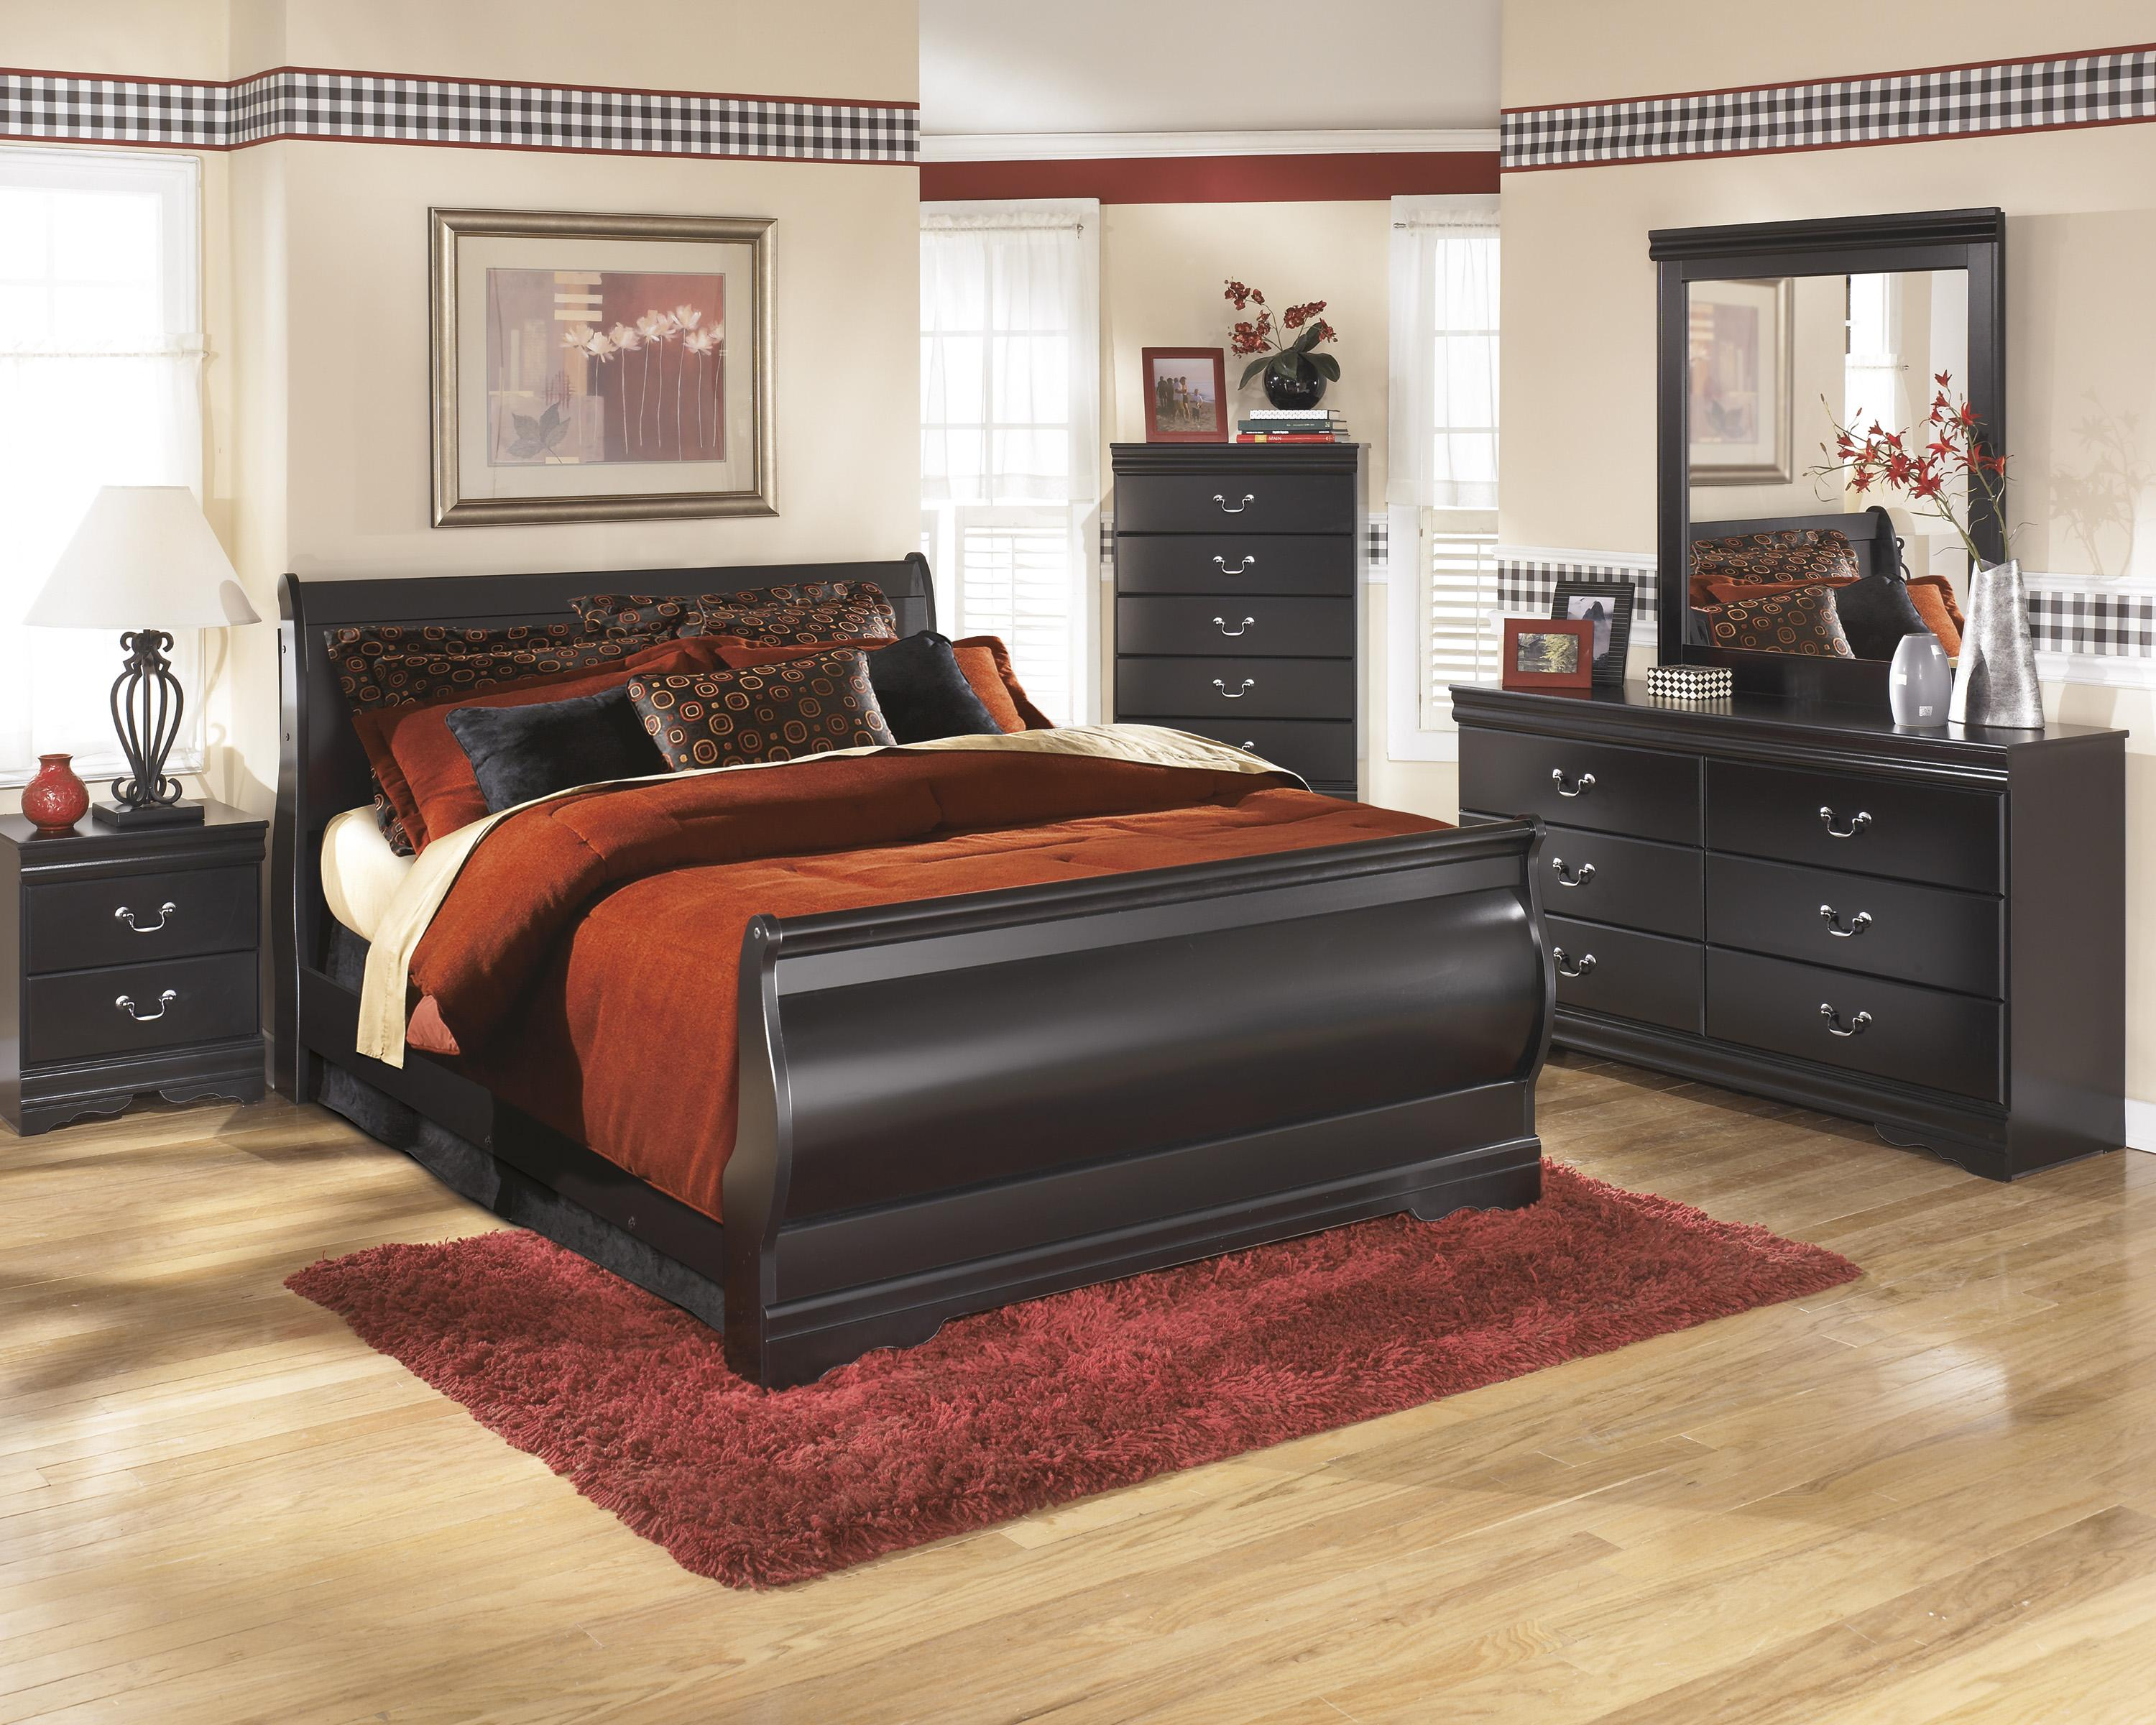 Signature Design by Ashley Huey Vineyard King Bedroom Group - Item Number: B128 K Bedroom Group 1